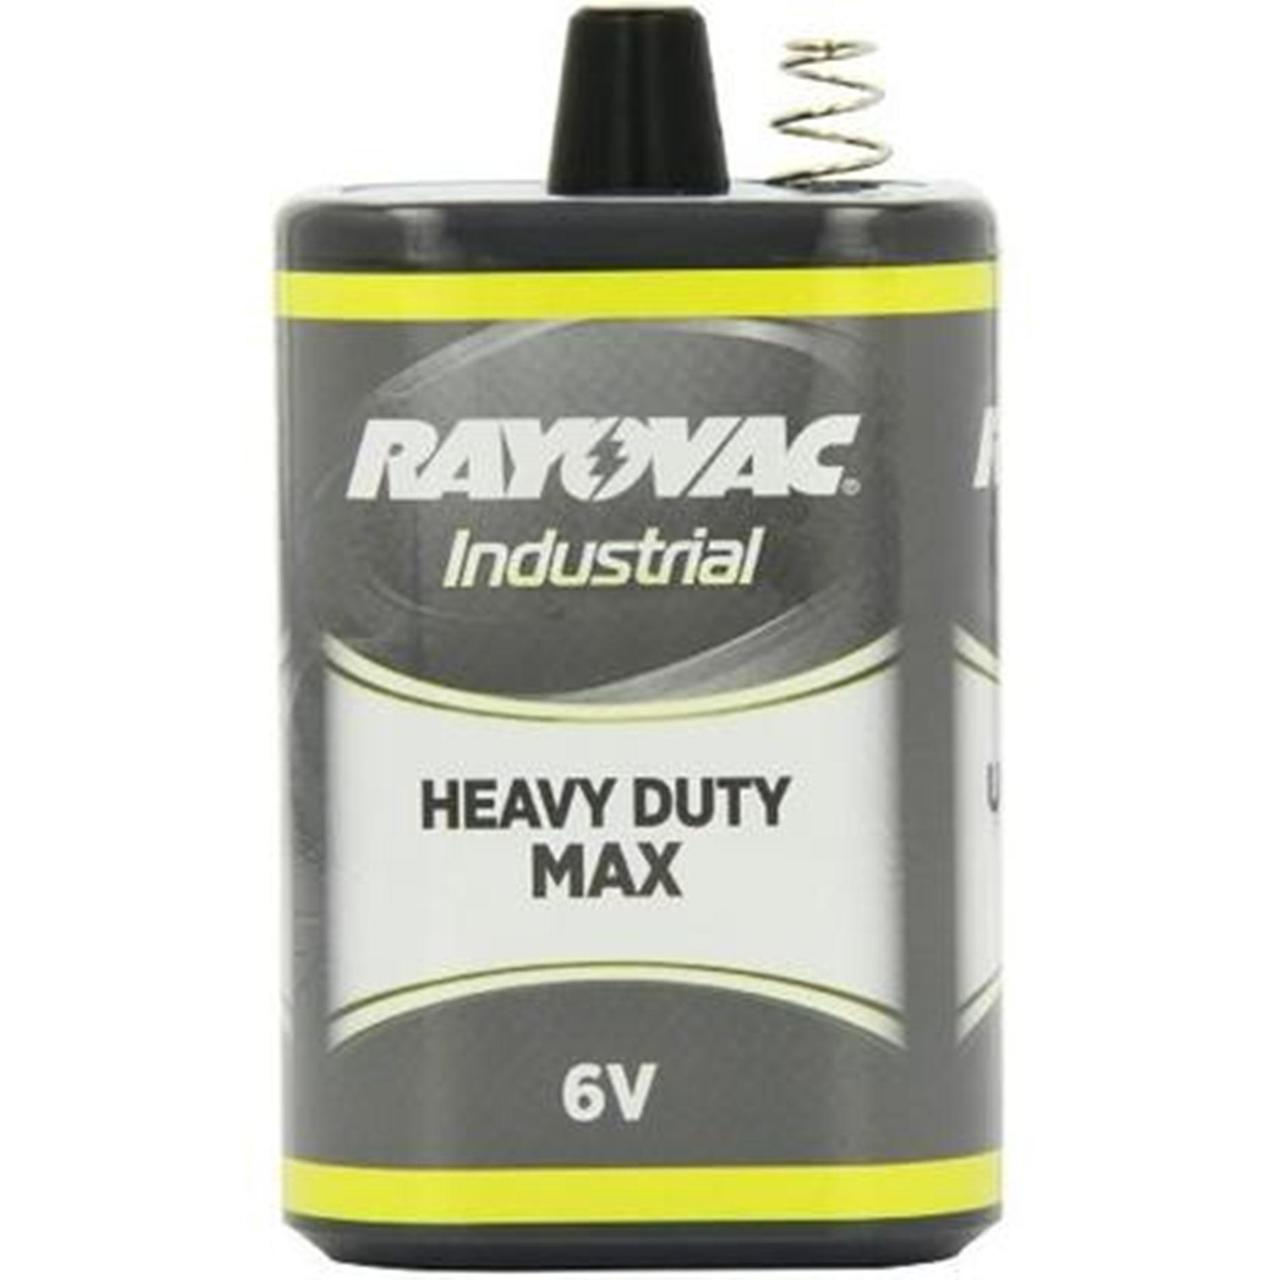 Rayovac 6V-HDM Industrial Heavy Duty Max 6V Spring Top Lantern Battery + FREE SHIPPING